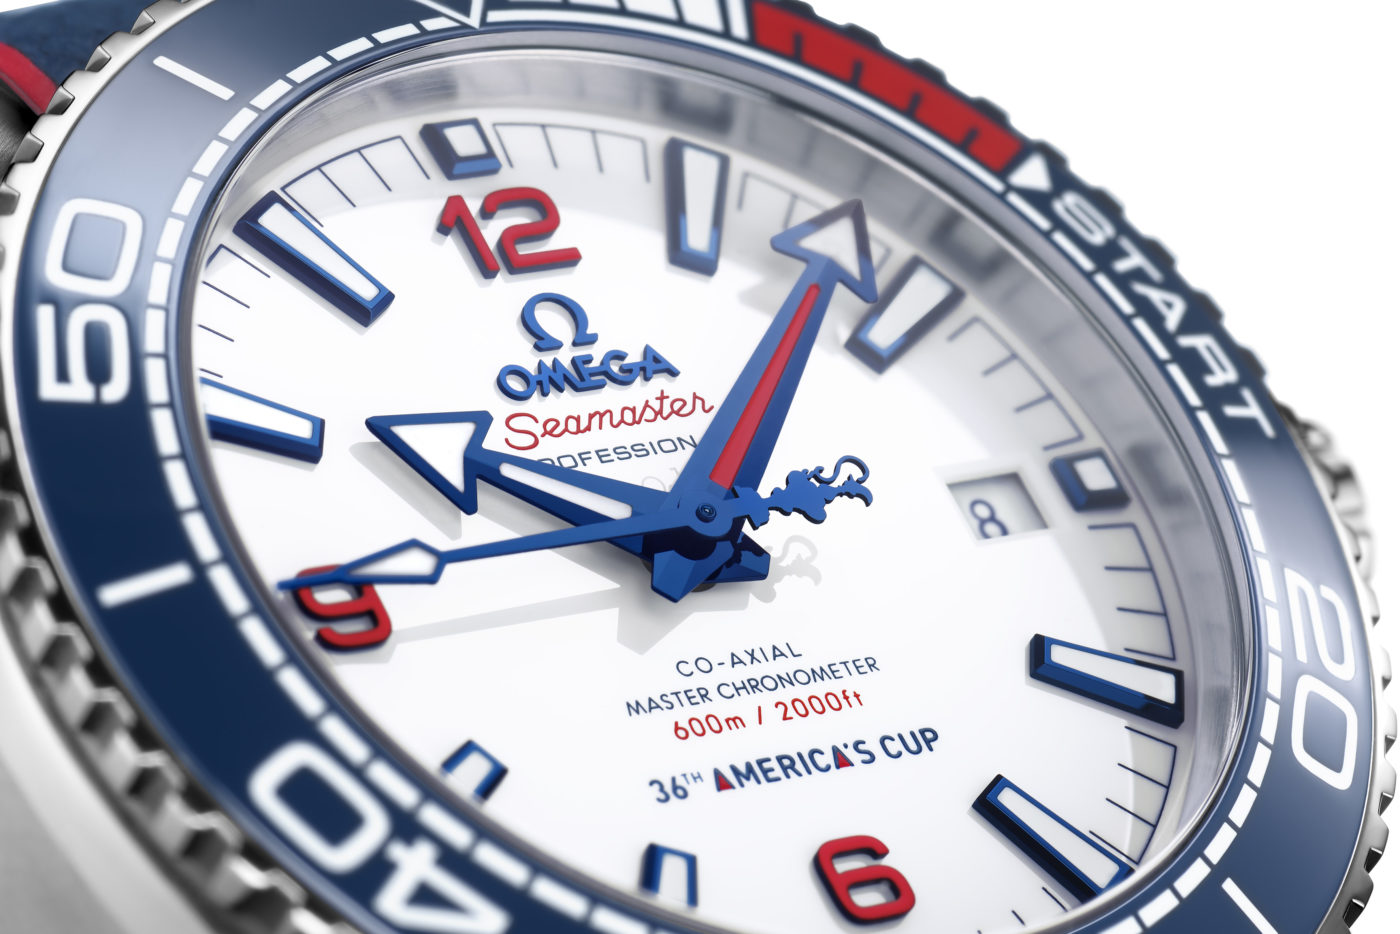 OMEGA Seamaster Planet Ocean 36th America's Cup Announced